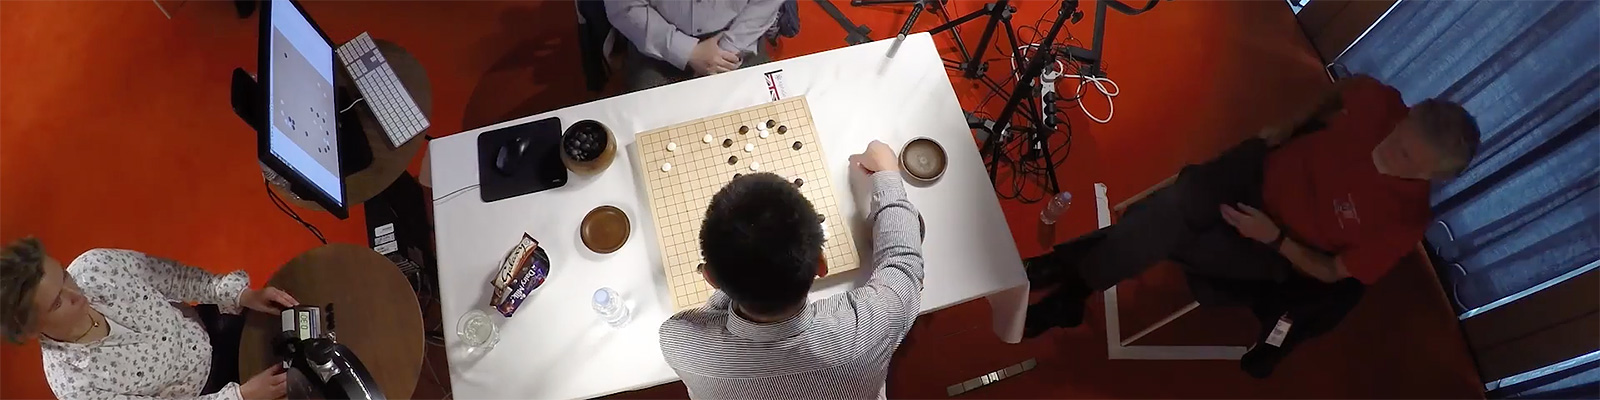 Google DeepMind: Ground-breaking AlphaGo masters the game of Go